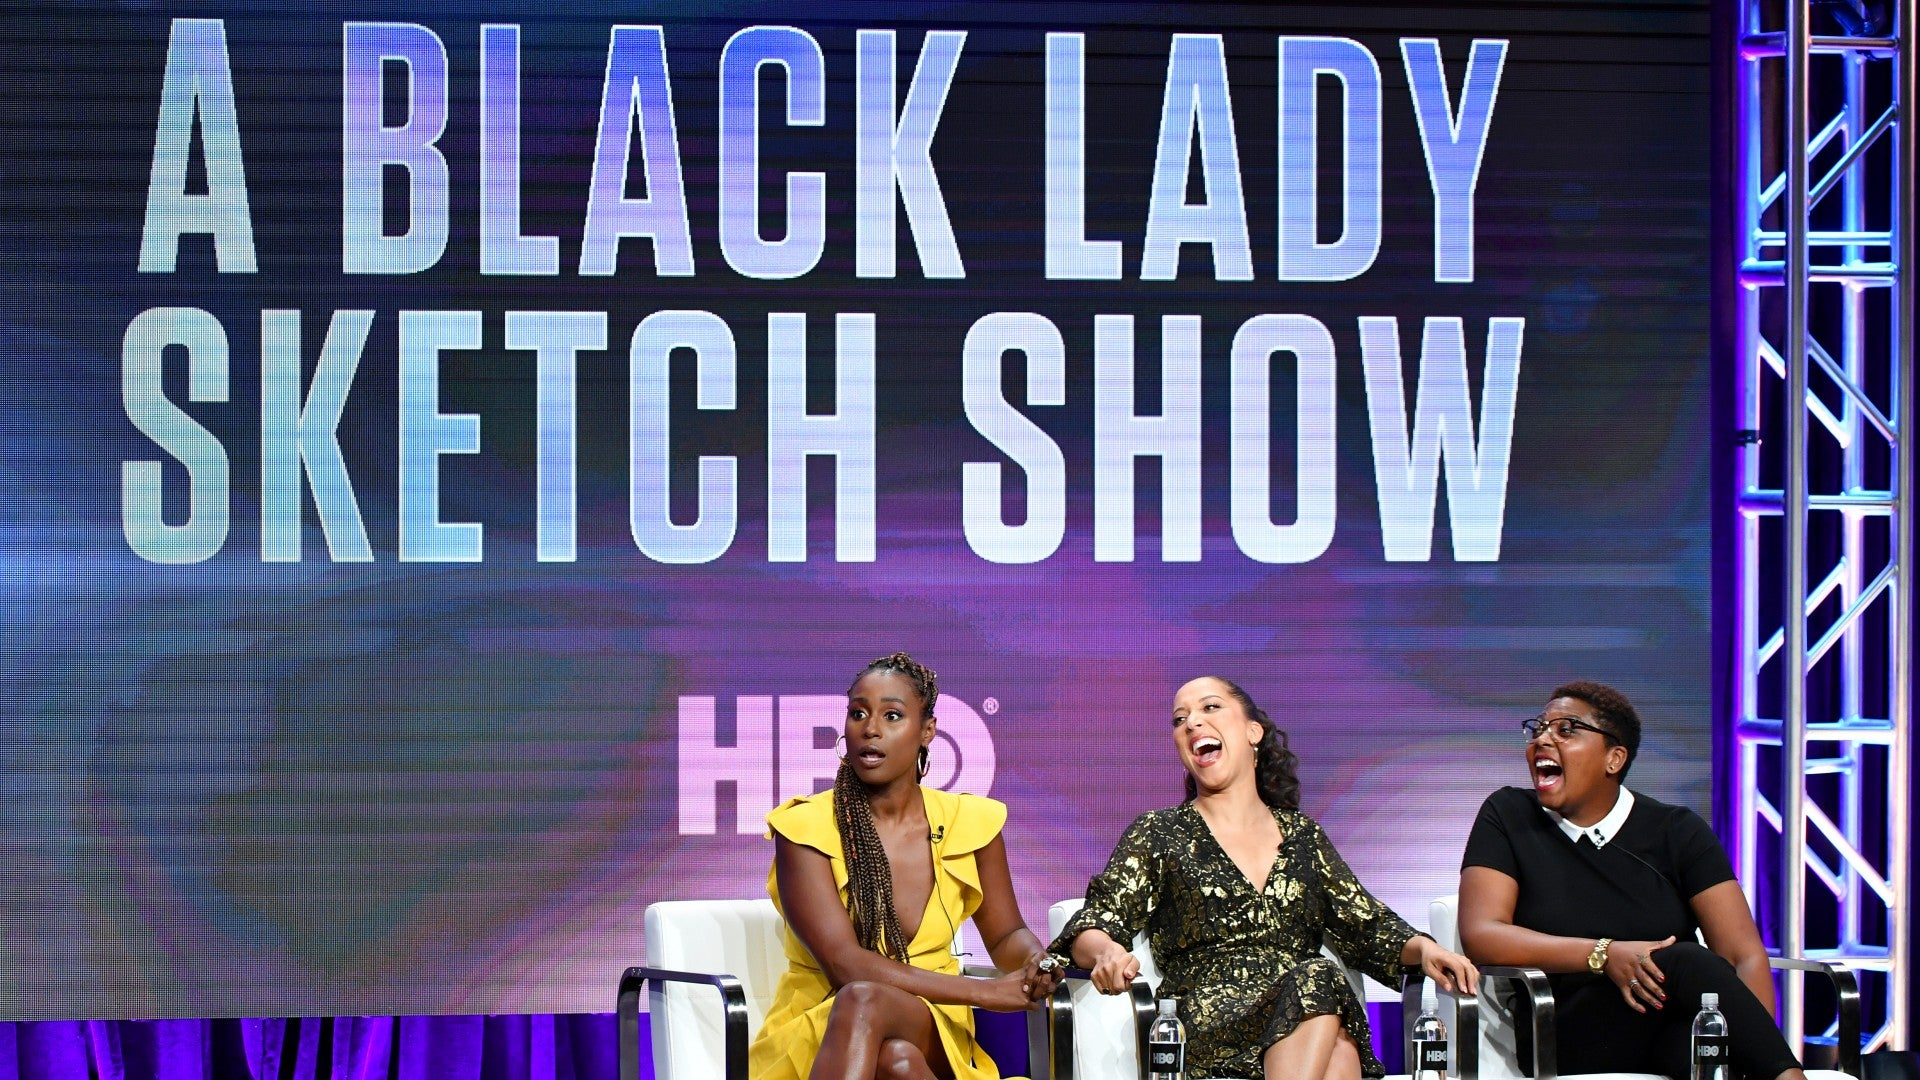 'A Black Lady Sketch Show' Is A Display Of Stunning Black Beauty